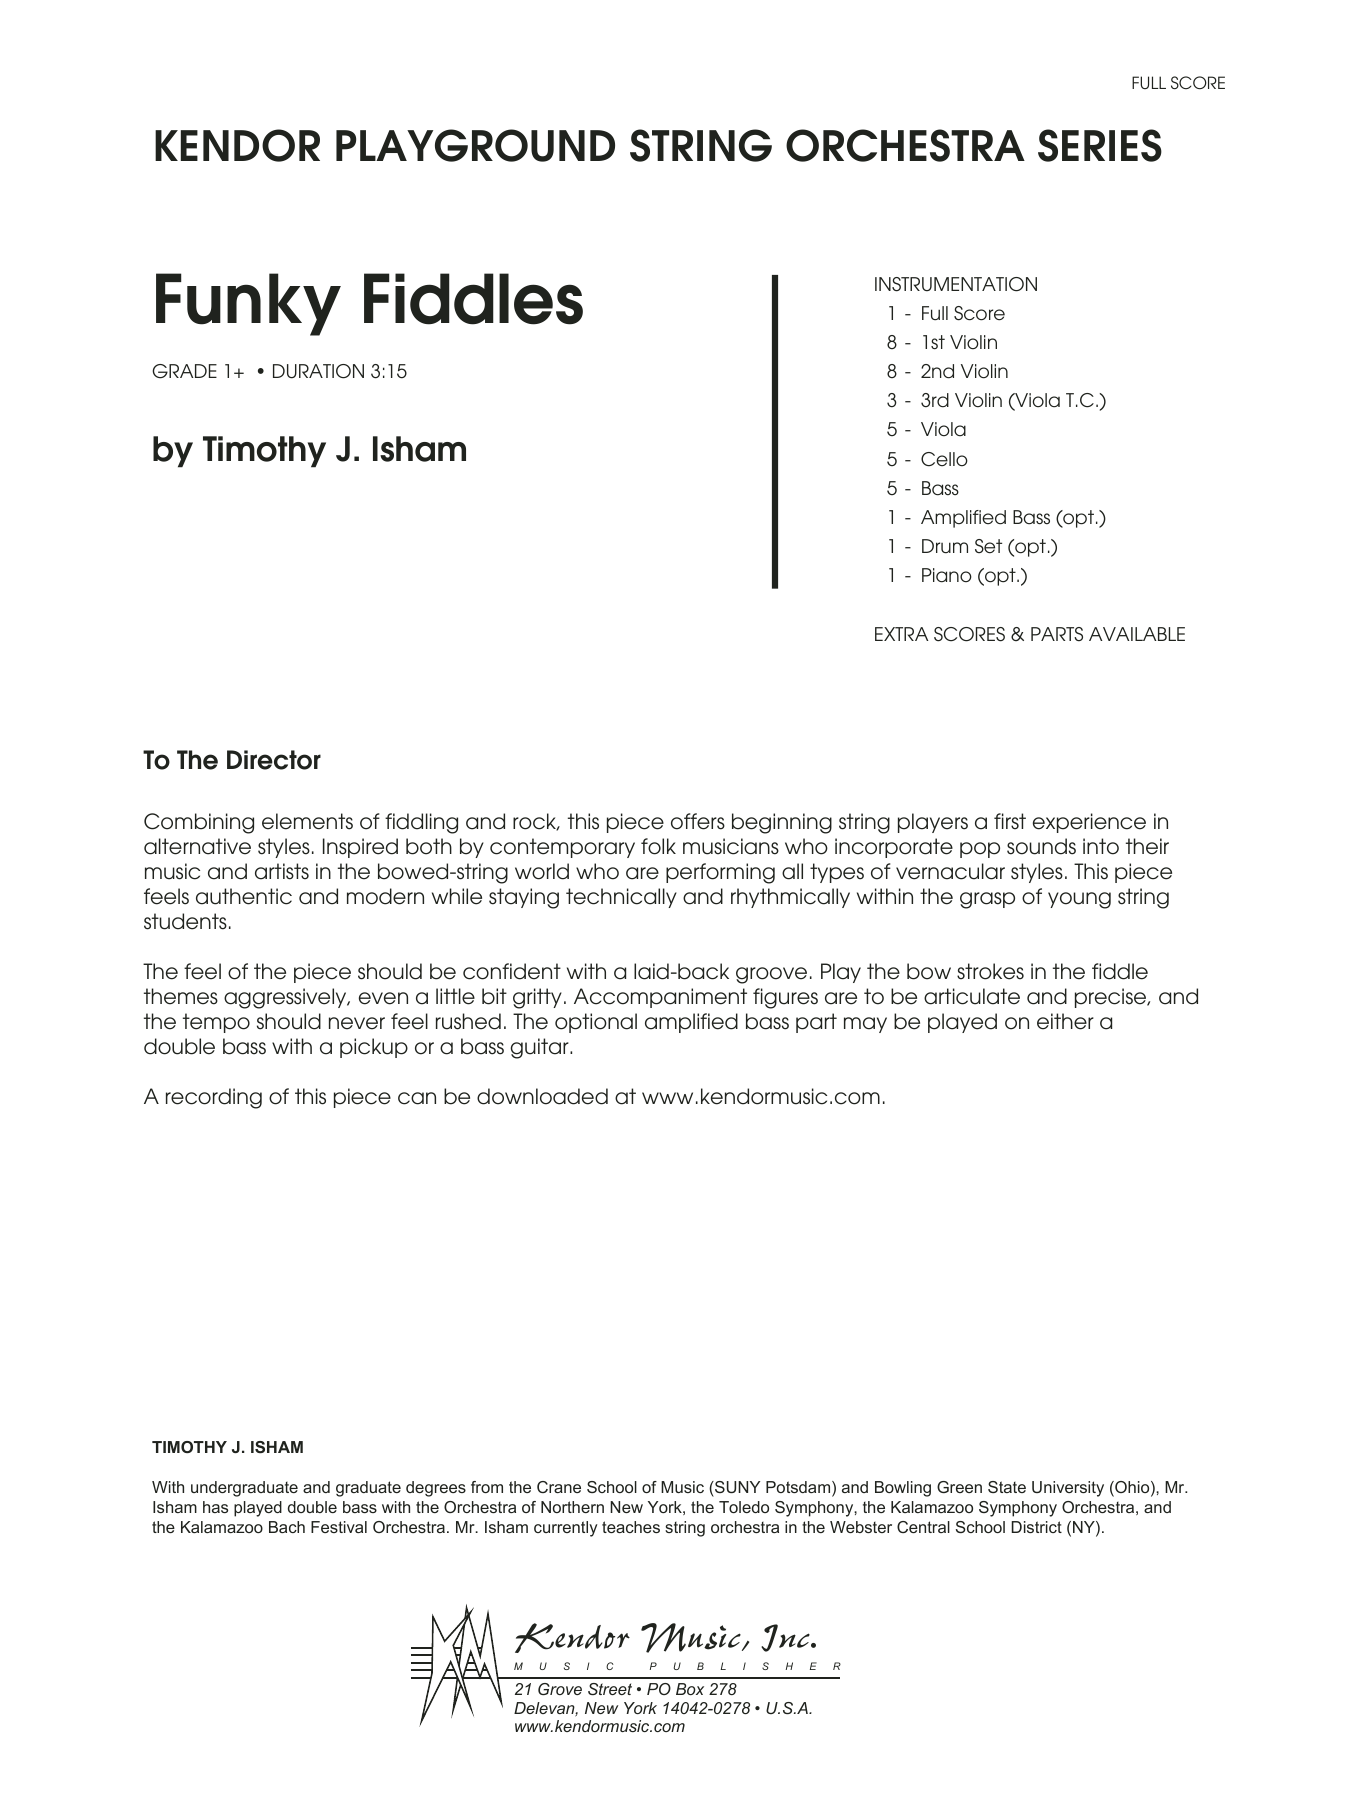 Funky Fiddles (COMPLETE) sheet music for orchestra by Tim Isham. Score Image Preview.